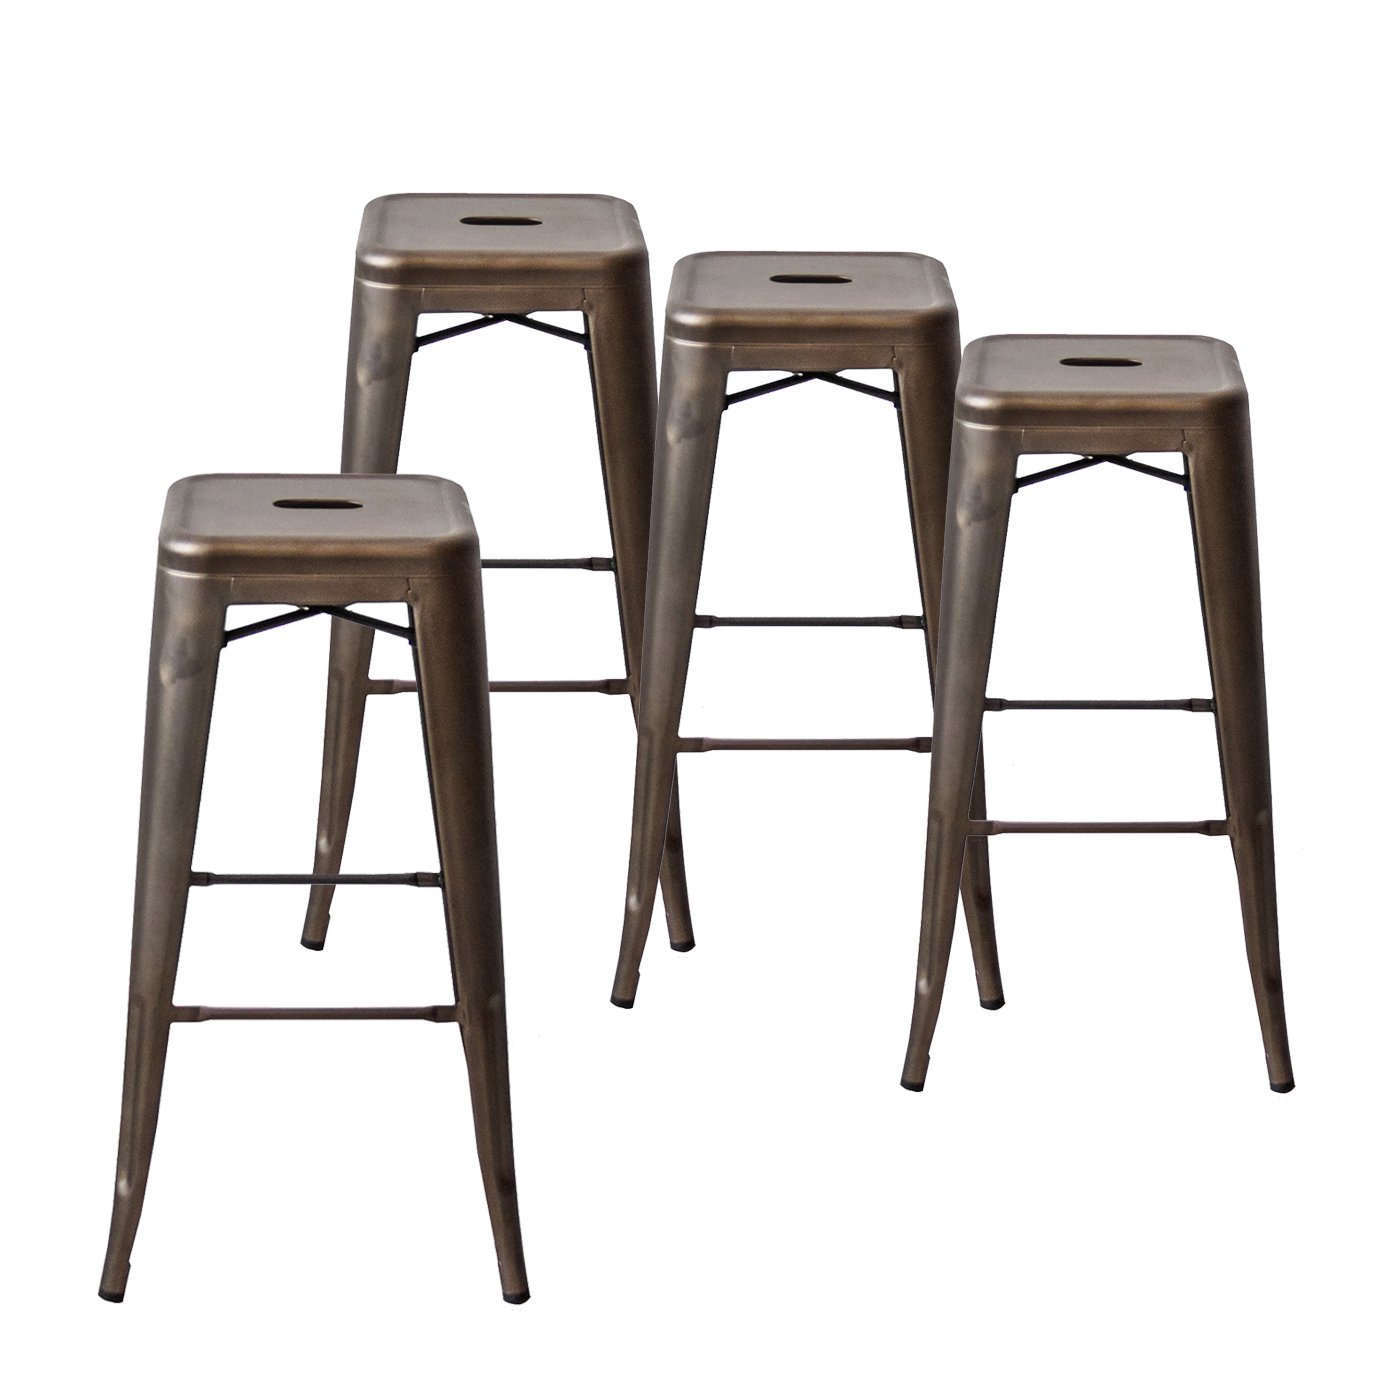 Buschman Set of Four Bronze 30 Inches Counter High Tolix-Style Metal Bar Stools, Indoor/Outdoor, Stackable